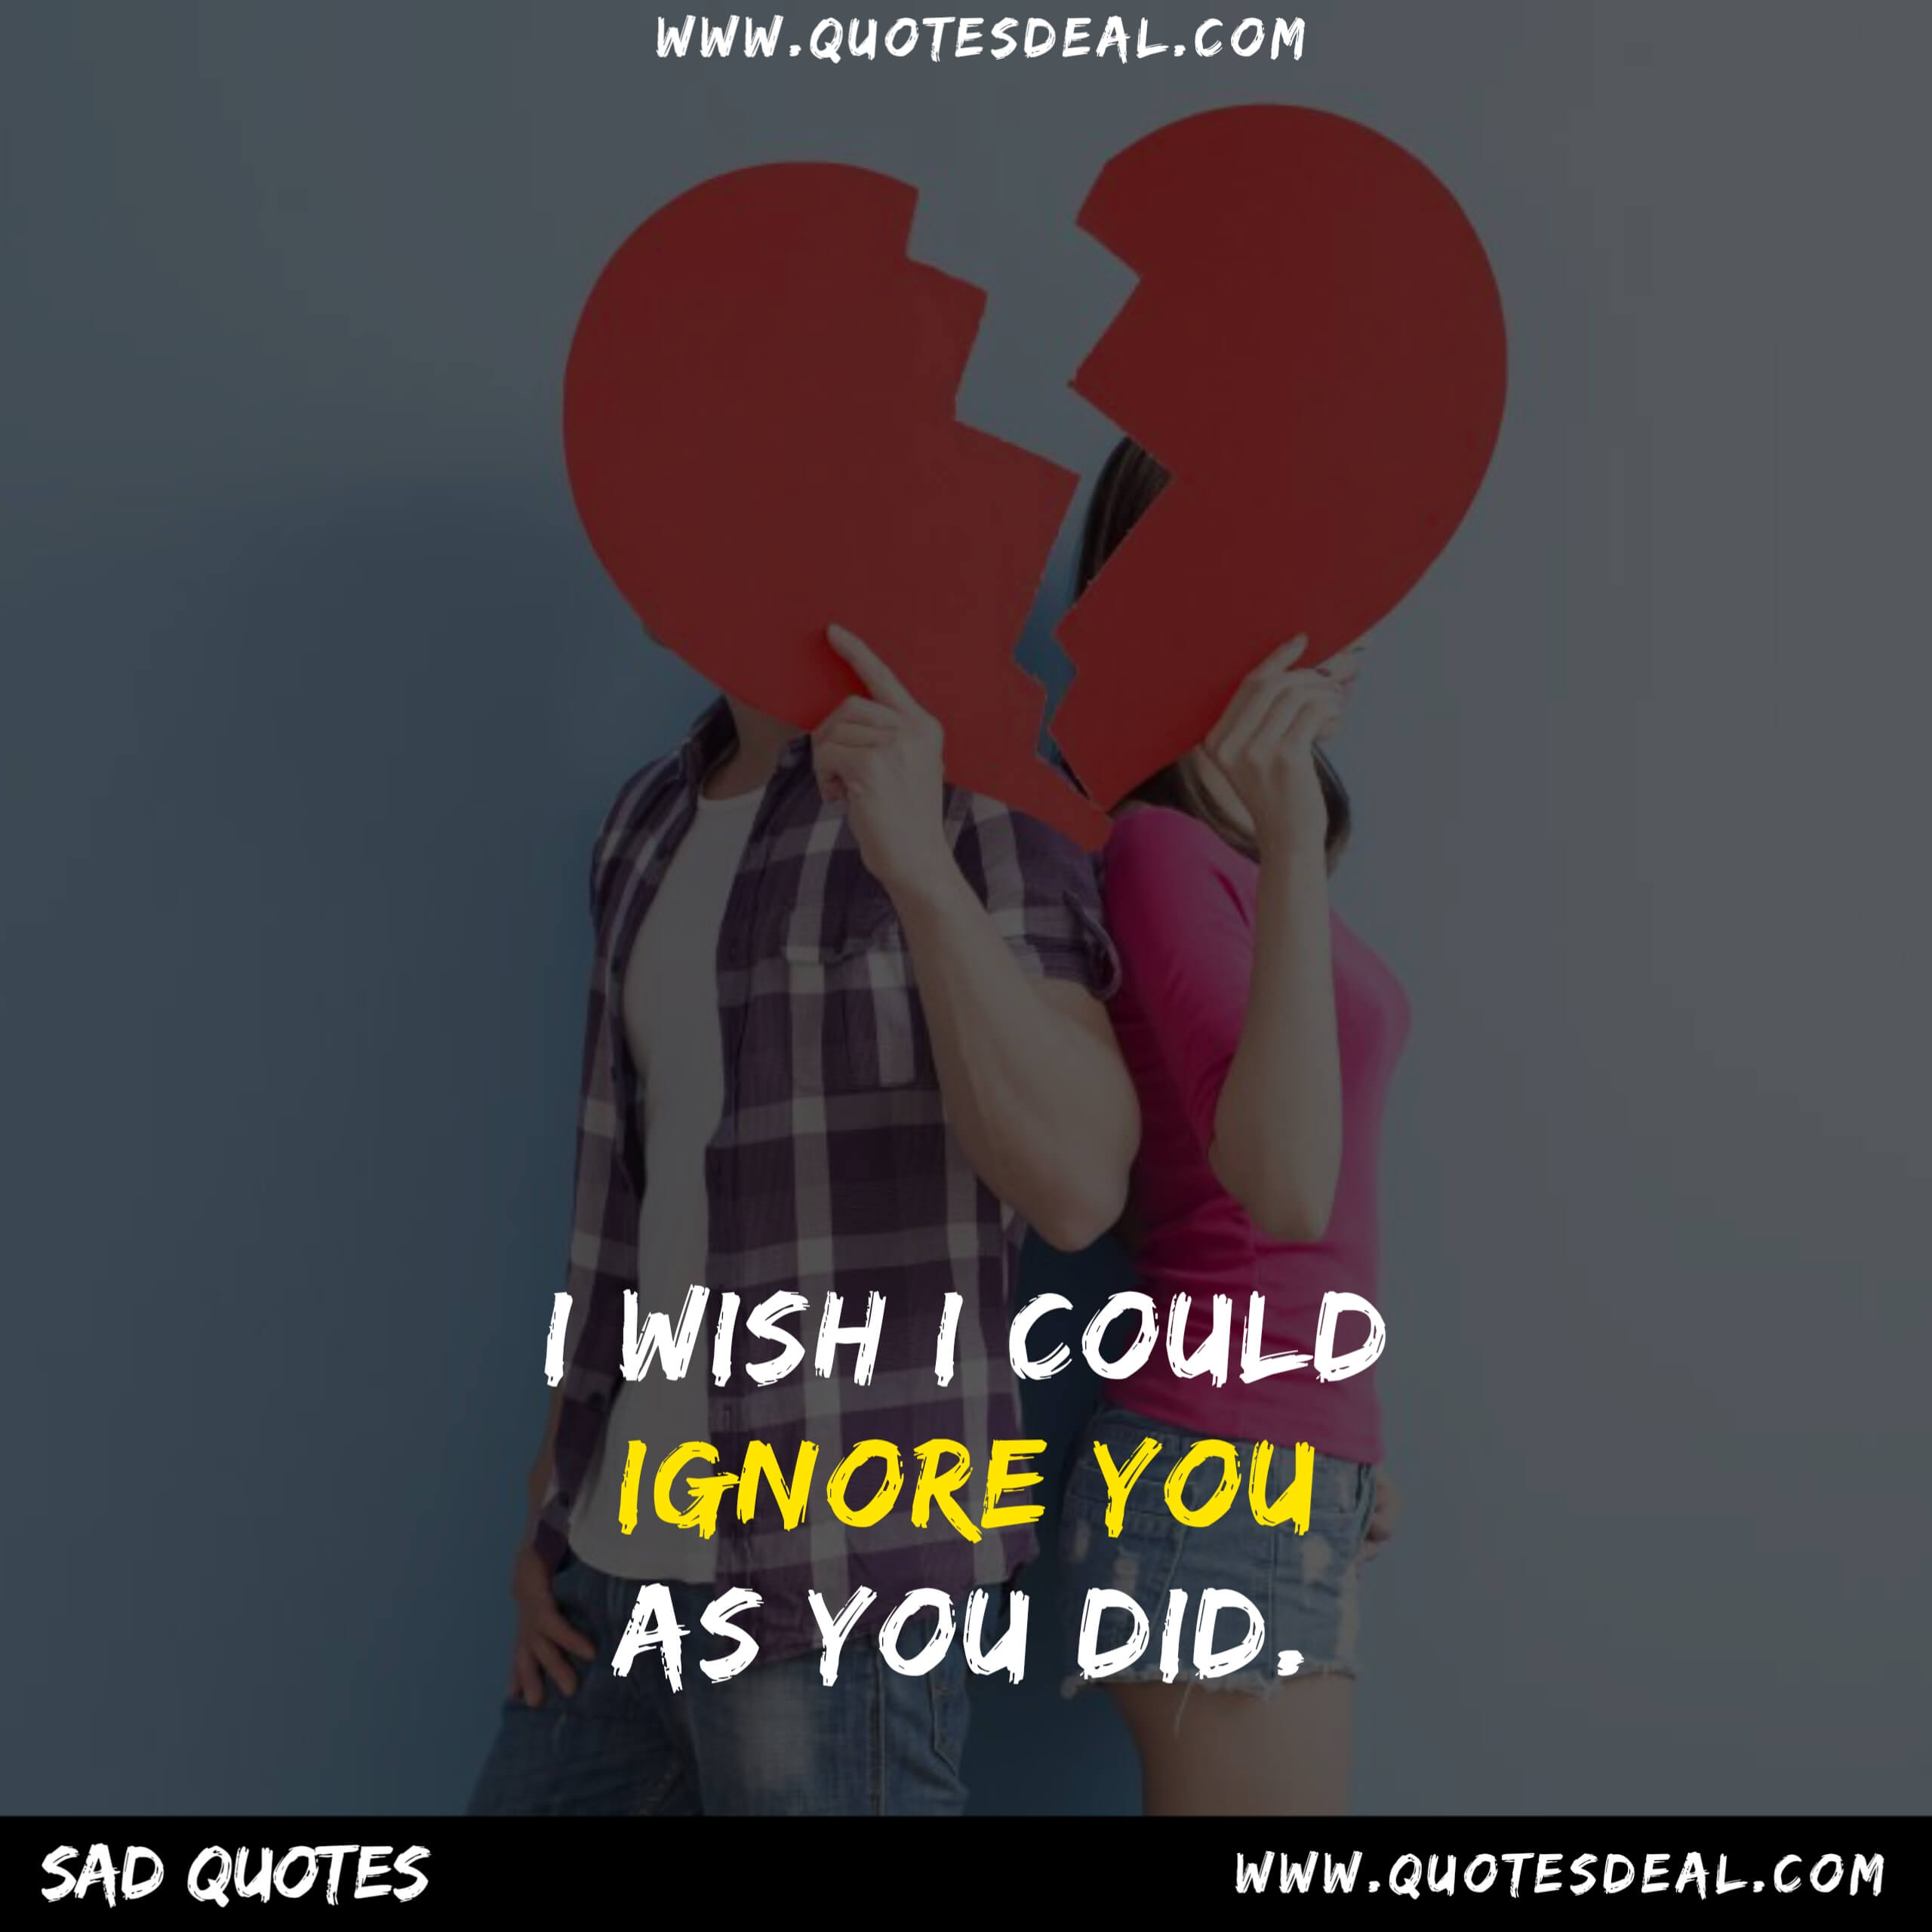 ignore you as you did